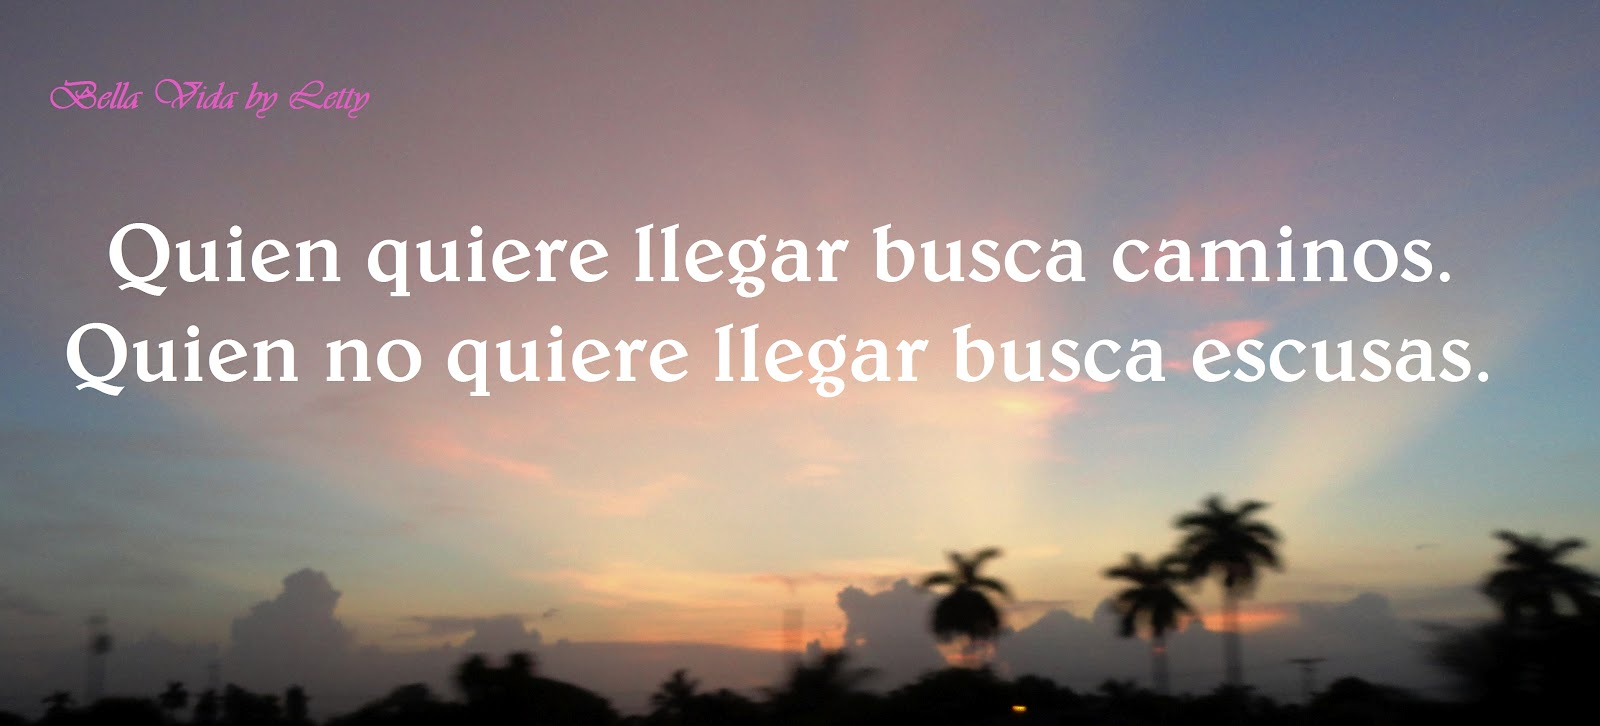 beautiful quotes tumblr in spanish - photo #34